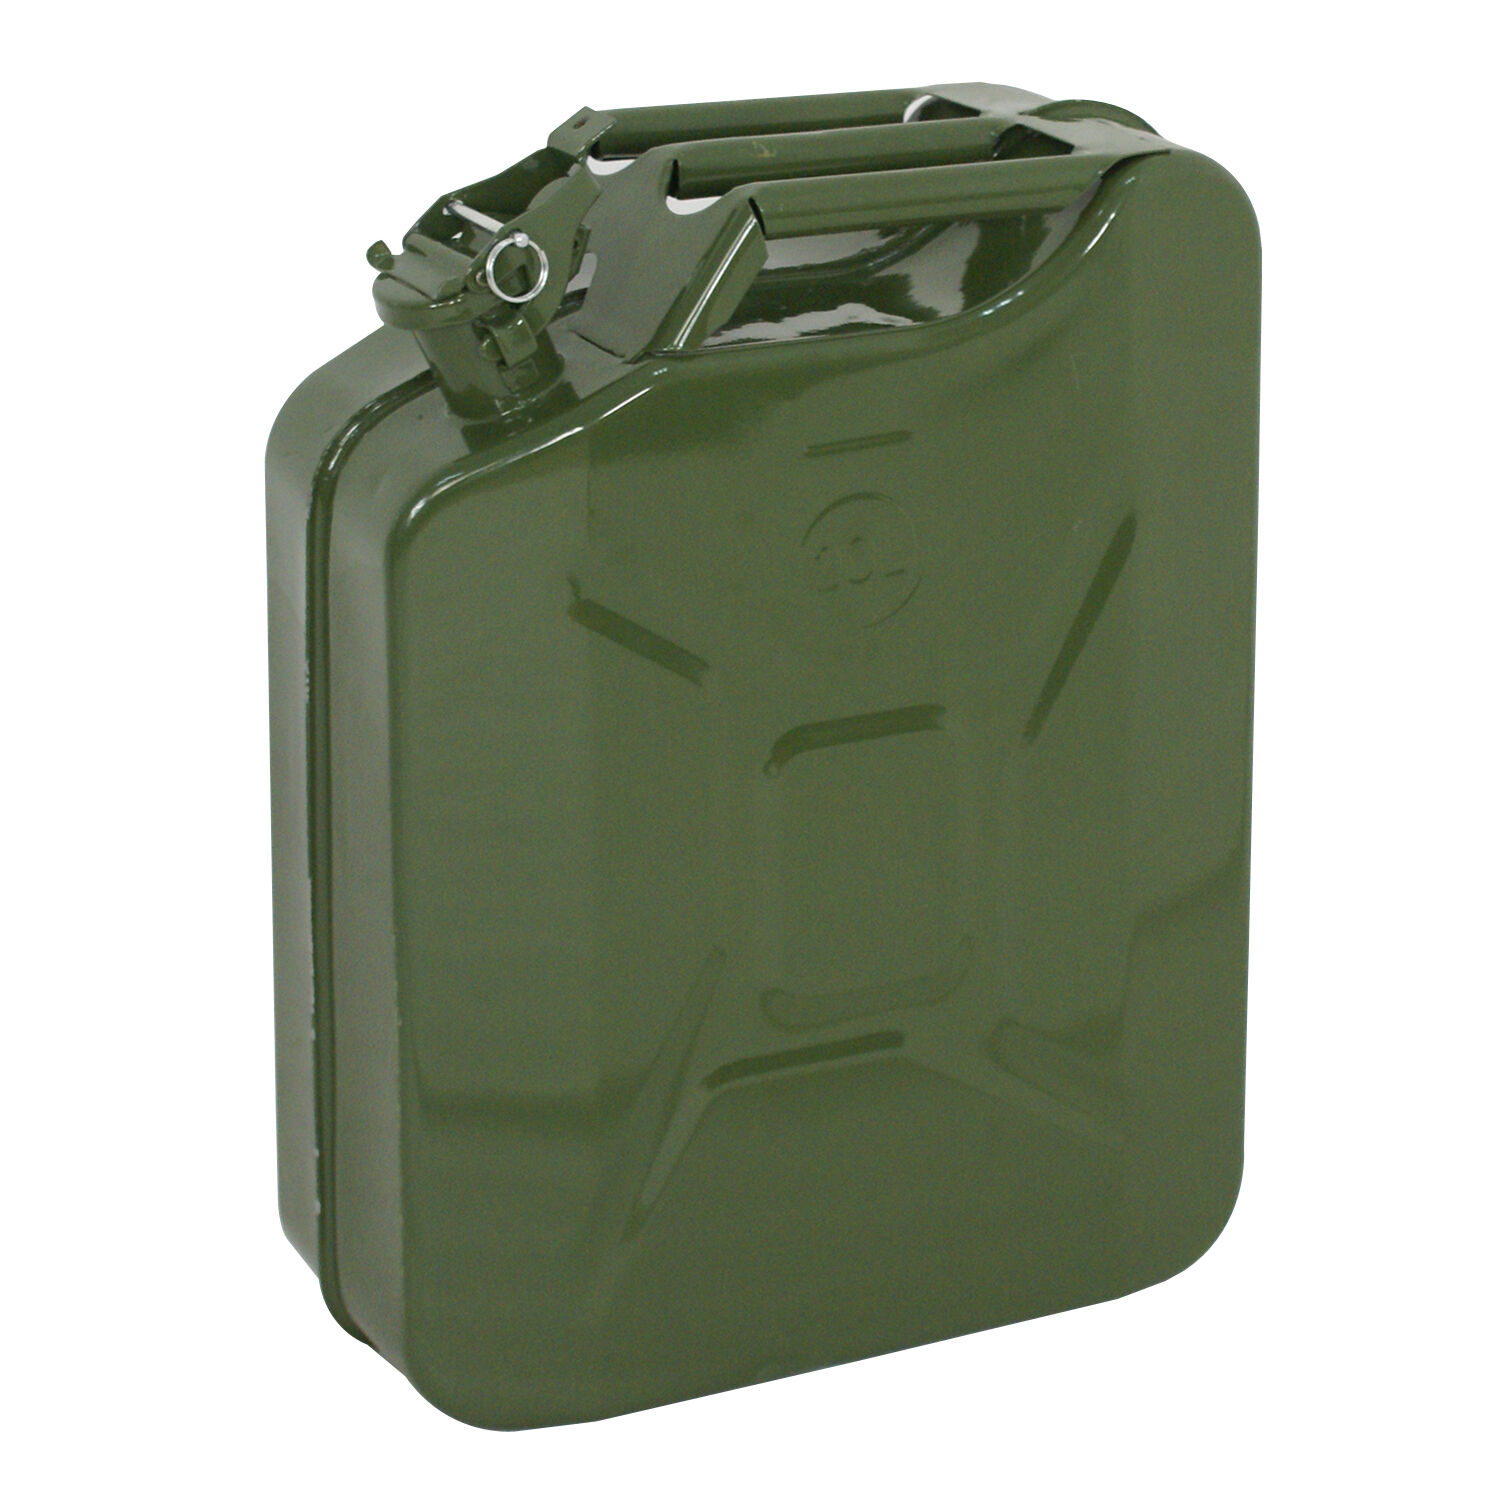 Green Jerry Can Gasoline Fuel Can Steel Tank 5 Gallon 20L Emergency Backup Business & Industrial